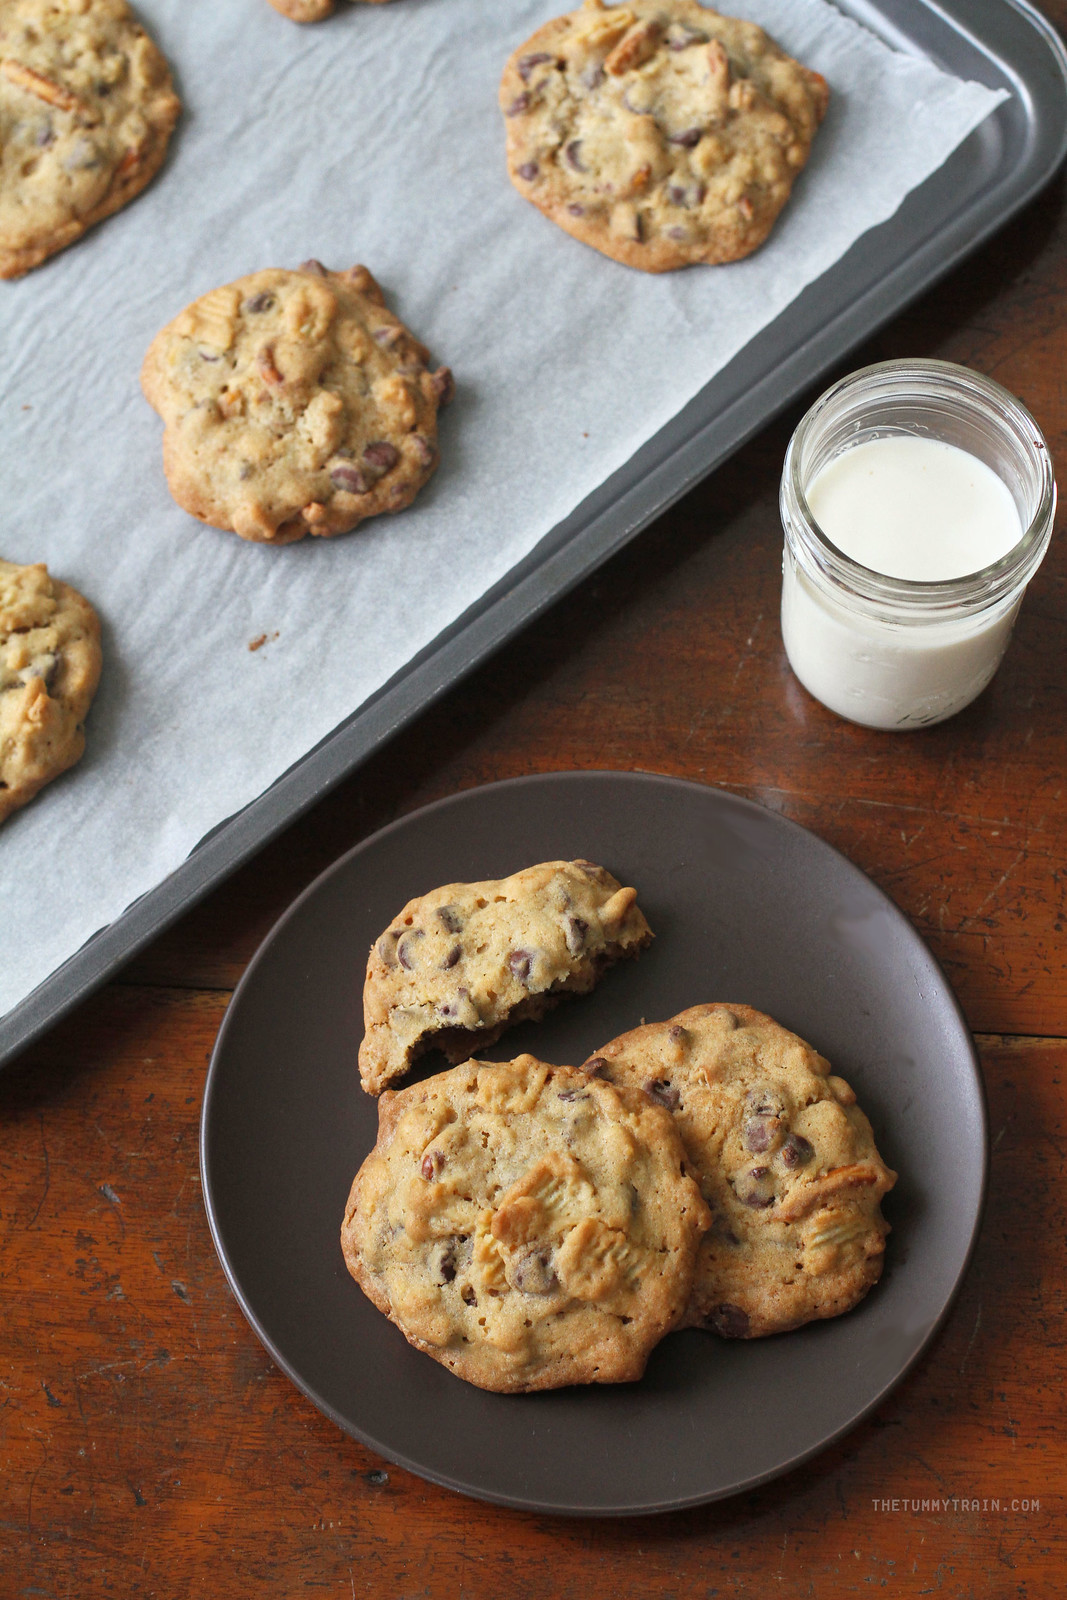 32015050582 9a63c4aa26 h - Finding new favourites with these Sweet & Salty Chocolate Chip Cookies [VIDEO]